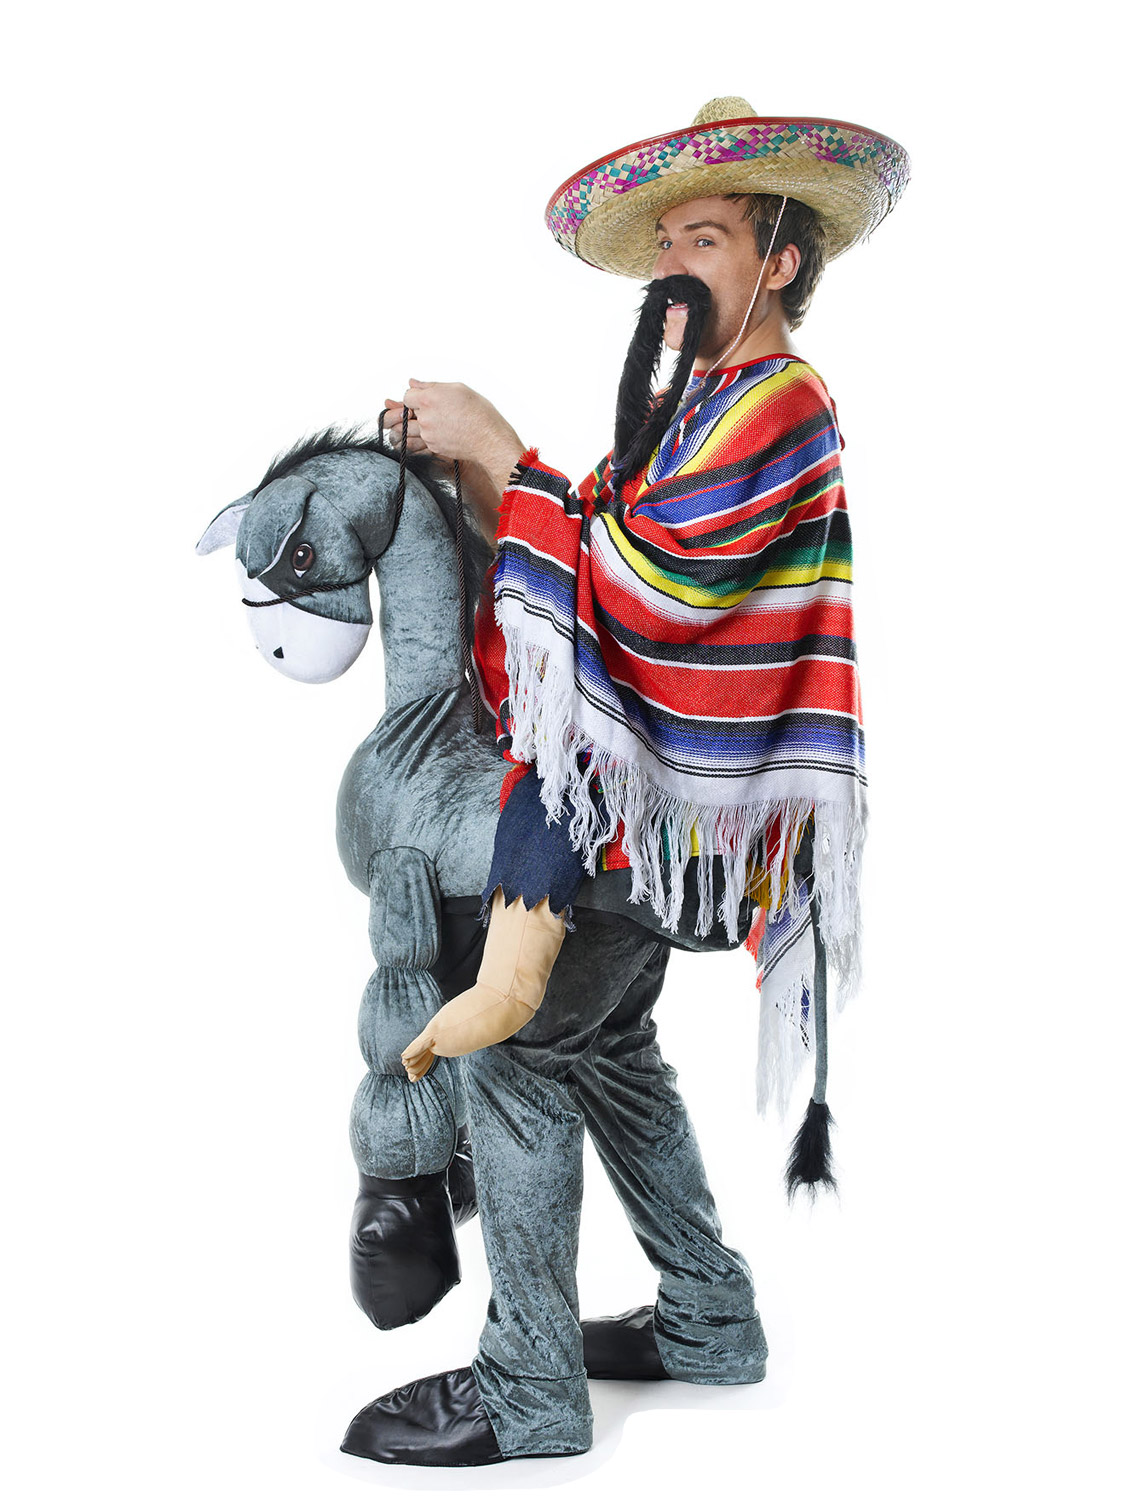 Deluxe Adult Step In Riding Ride On Animal Costumes Funny  sc 1 st  Meningrey & Ride On Donkey Costume - Meningrey